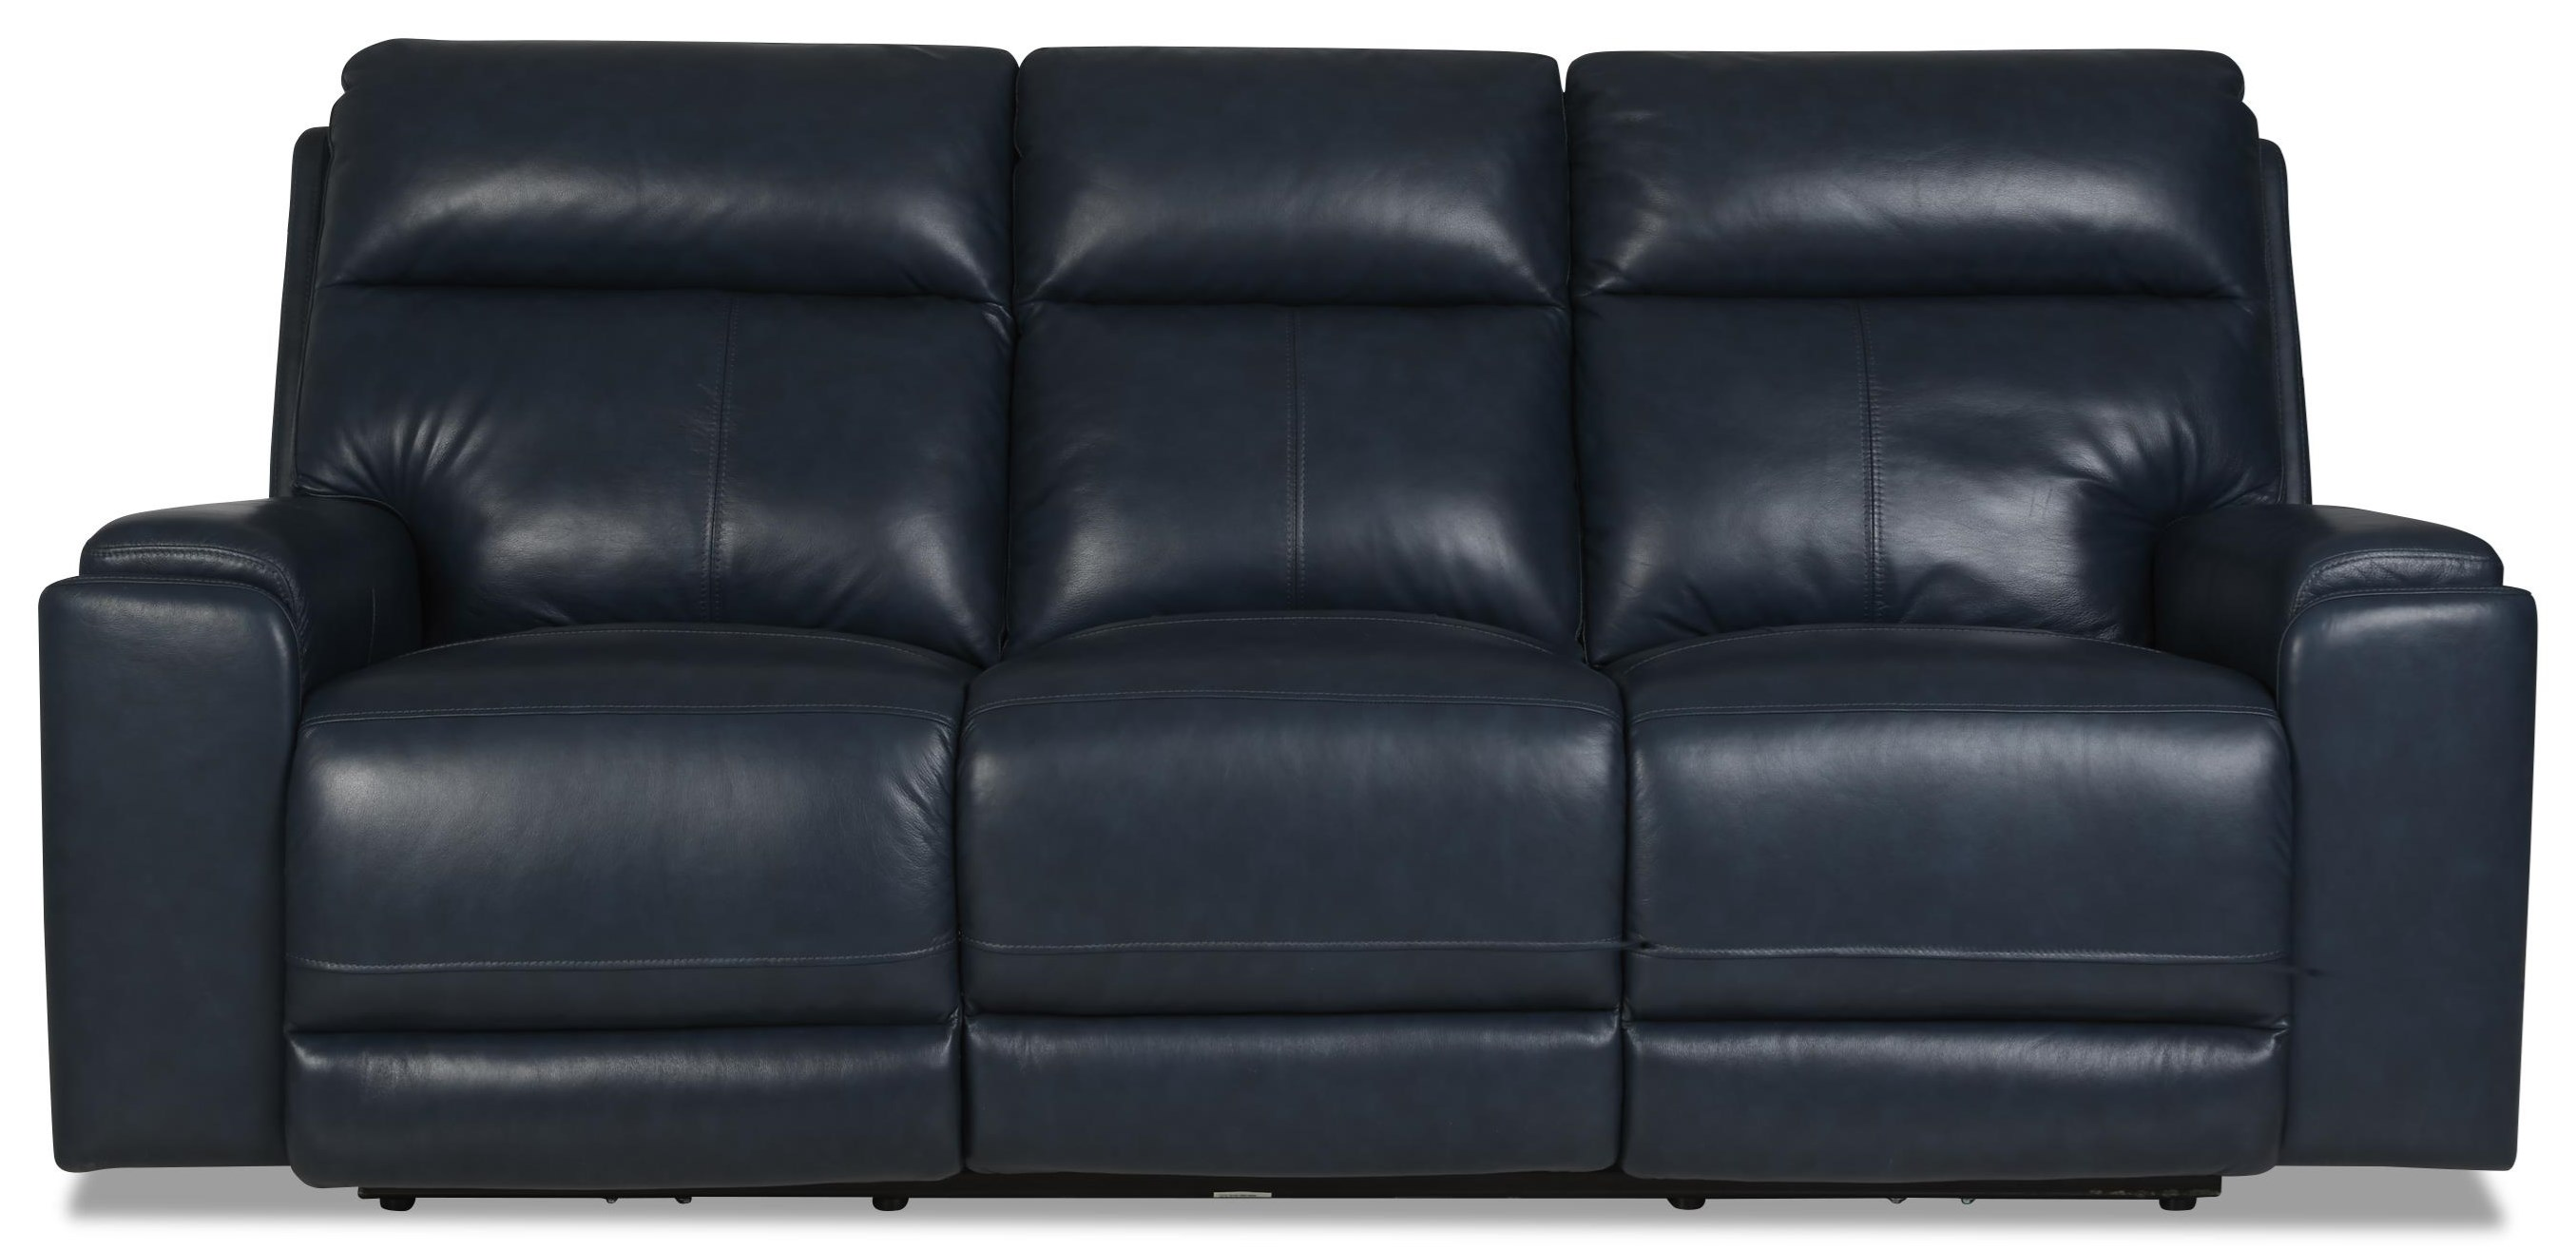 Santana Power Reclining Sofa w/ Pwr Headrests by Klaussner International at HomeWorld Furniture